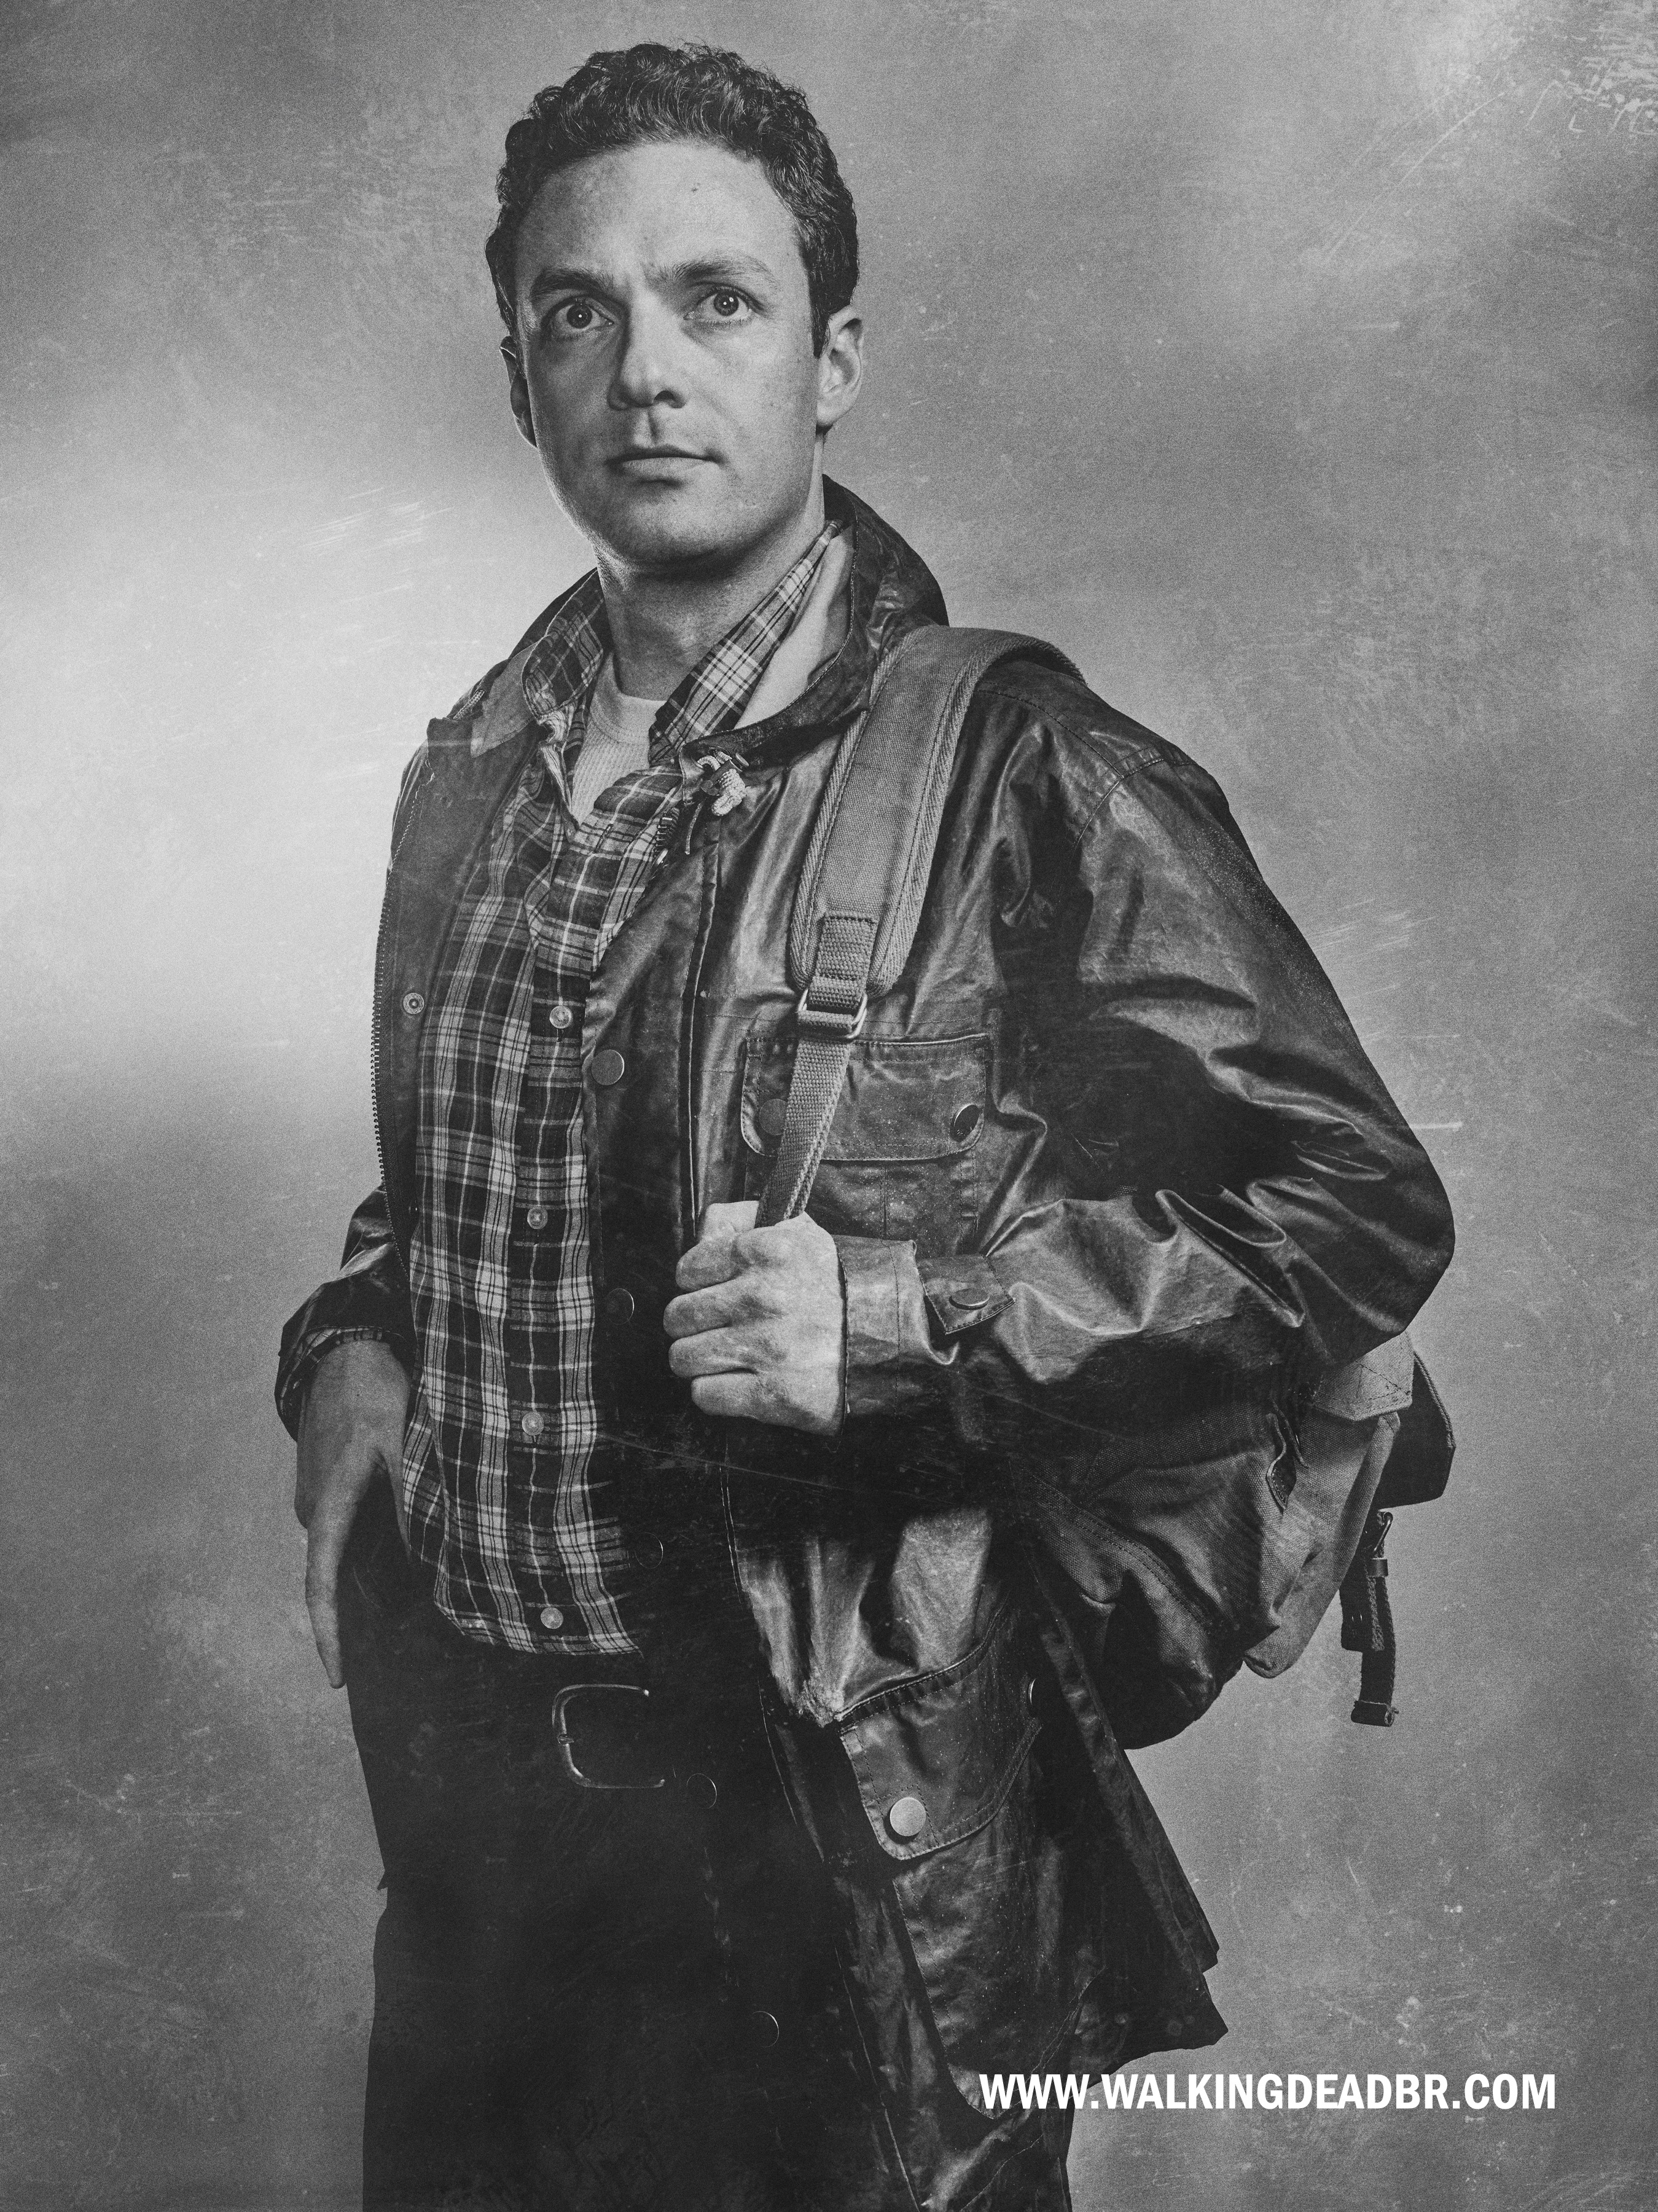 011-aaron-the-walking-dead-6-temporada-portrait